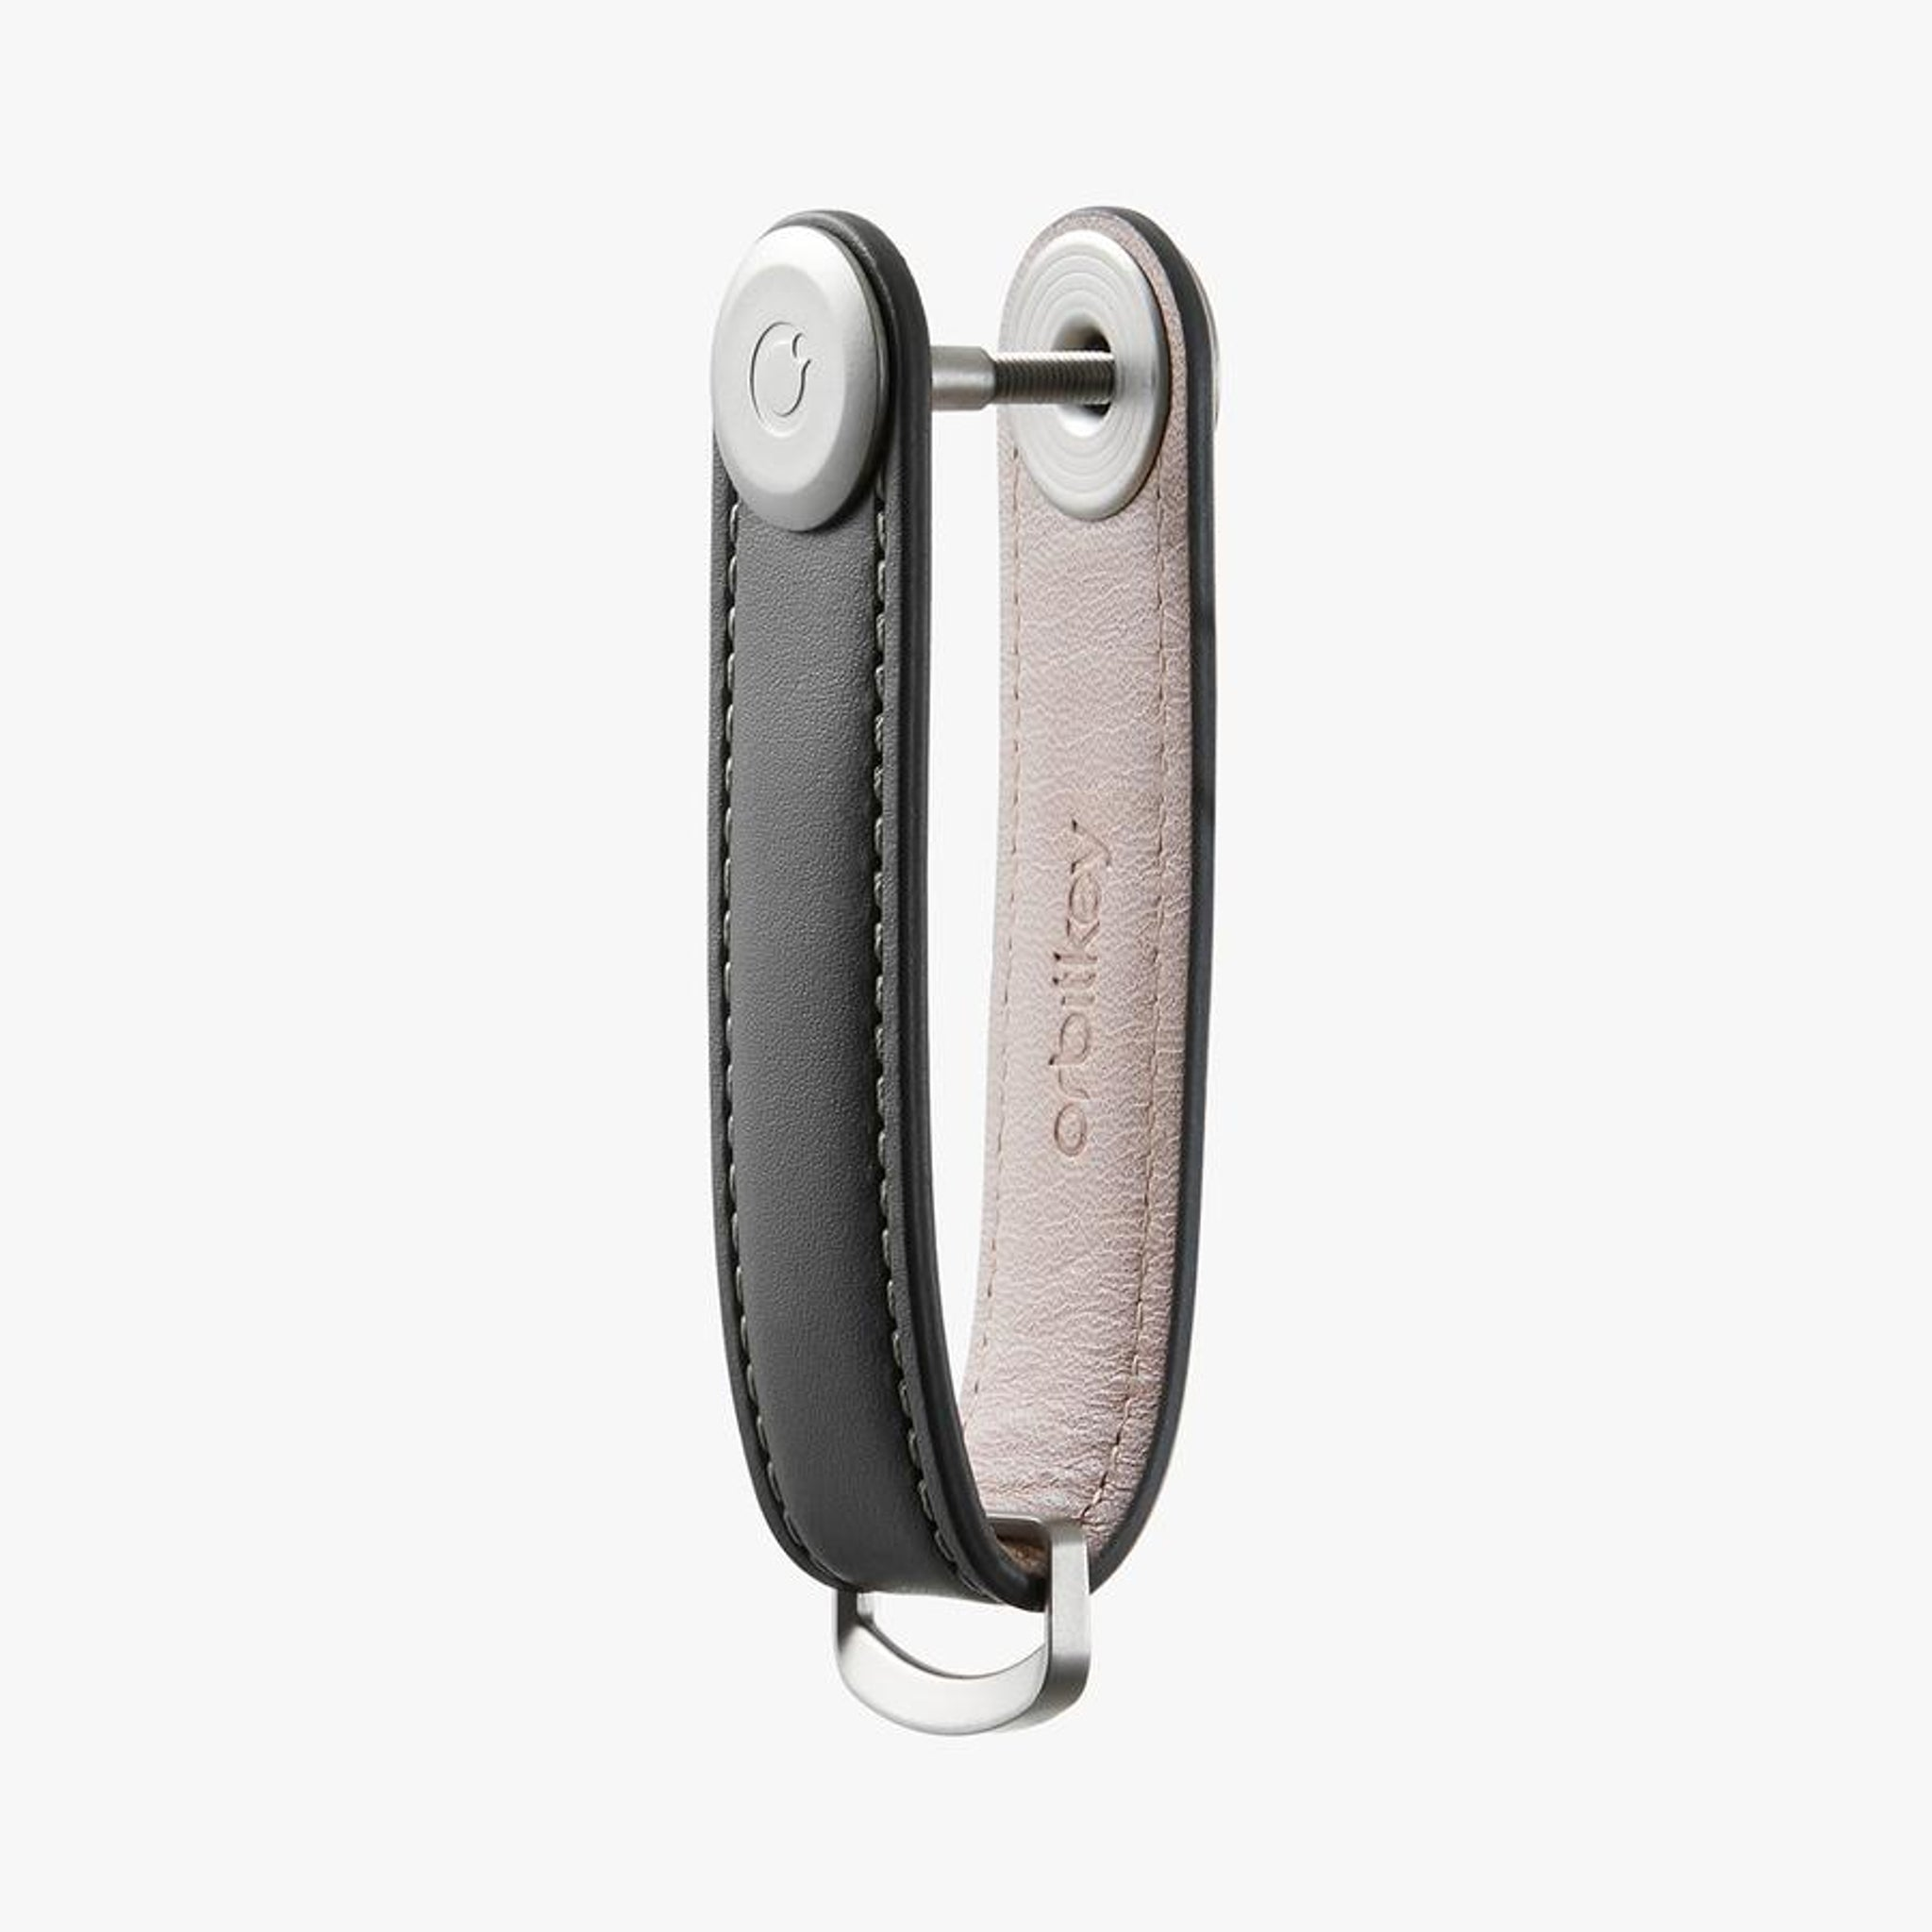 Orbitkey 2.0 Leather Charcoal with Grey Stitching